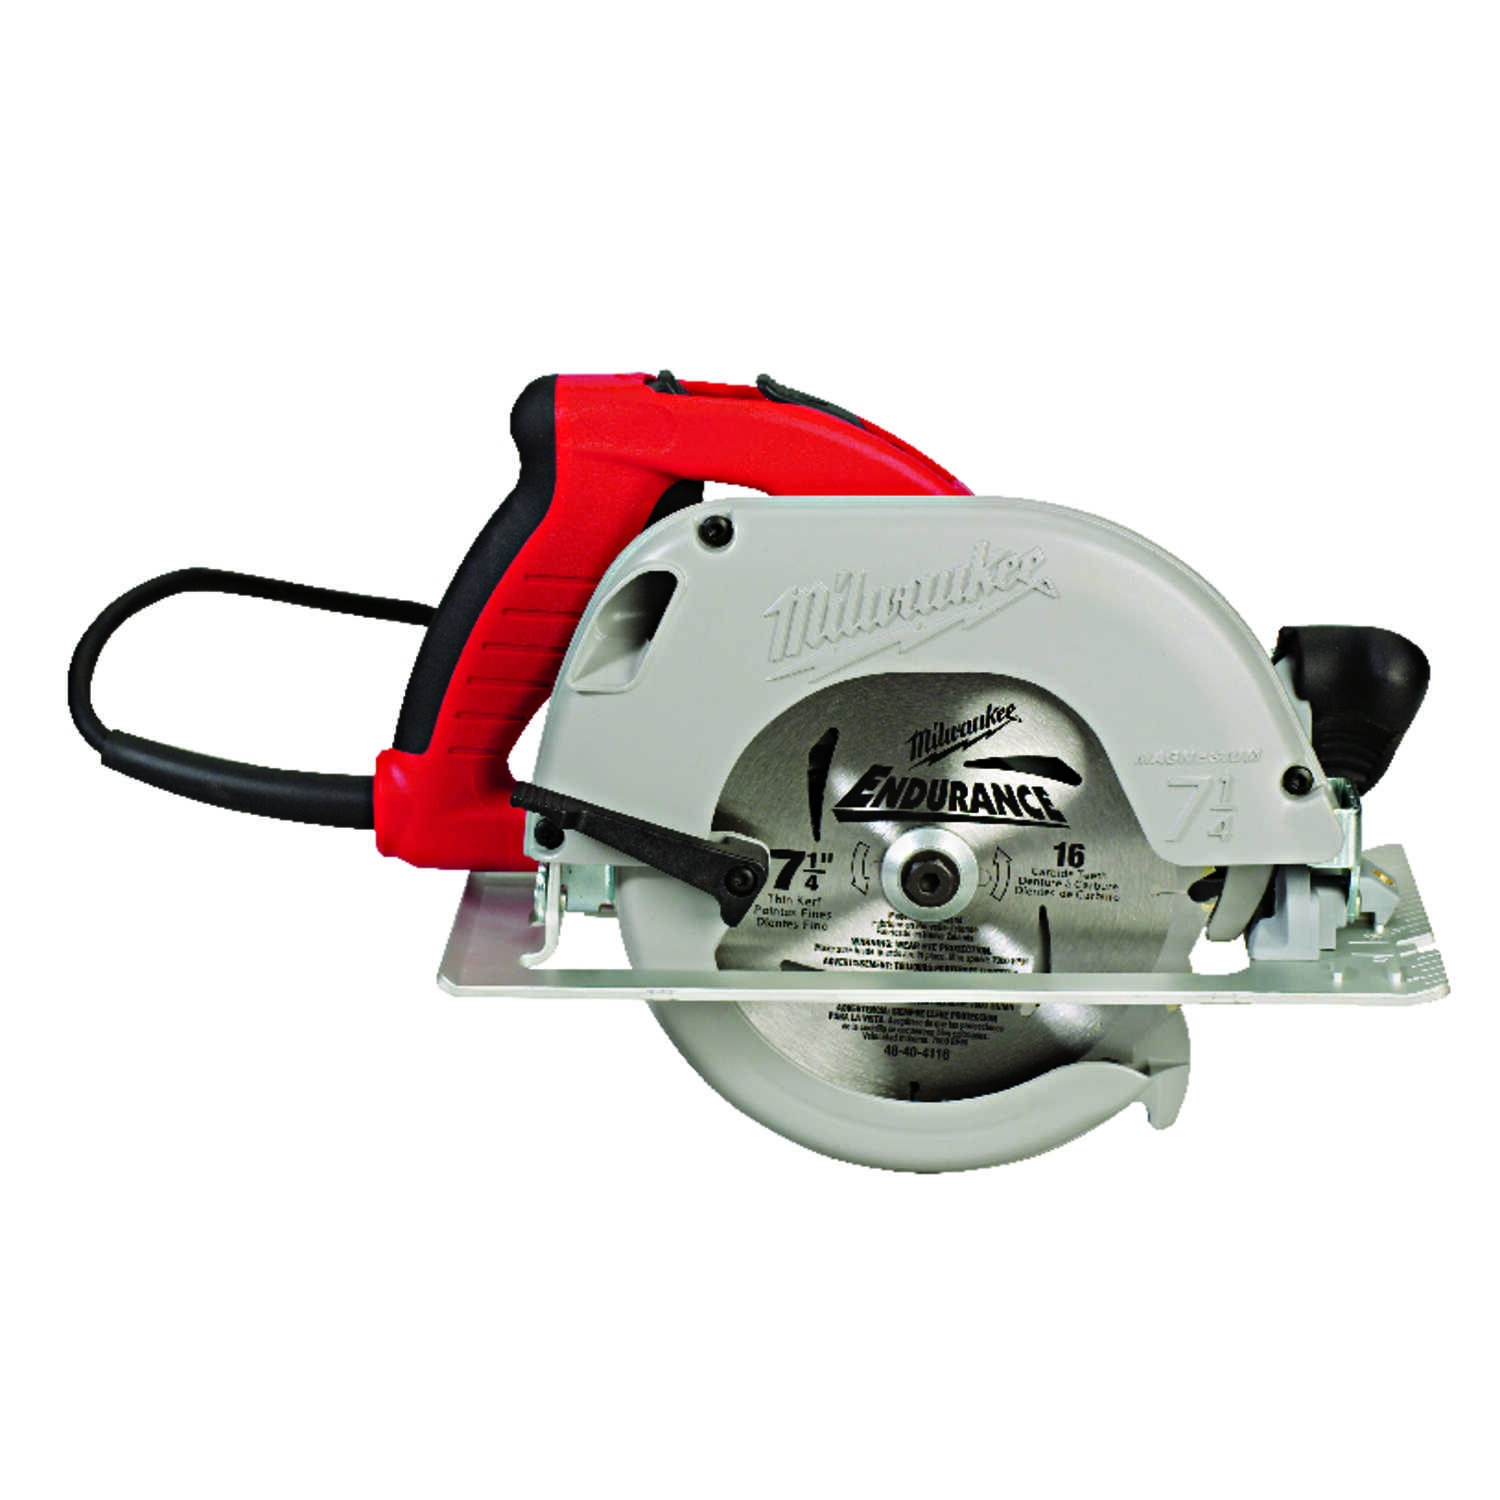 Milwaukee  TILT-LOK  7-1/4 in. 120 volts Corded  Circular Saw  15 amps 5800 rpm Cordless